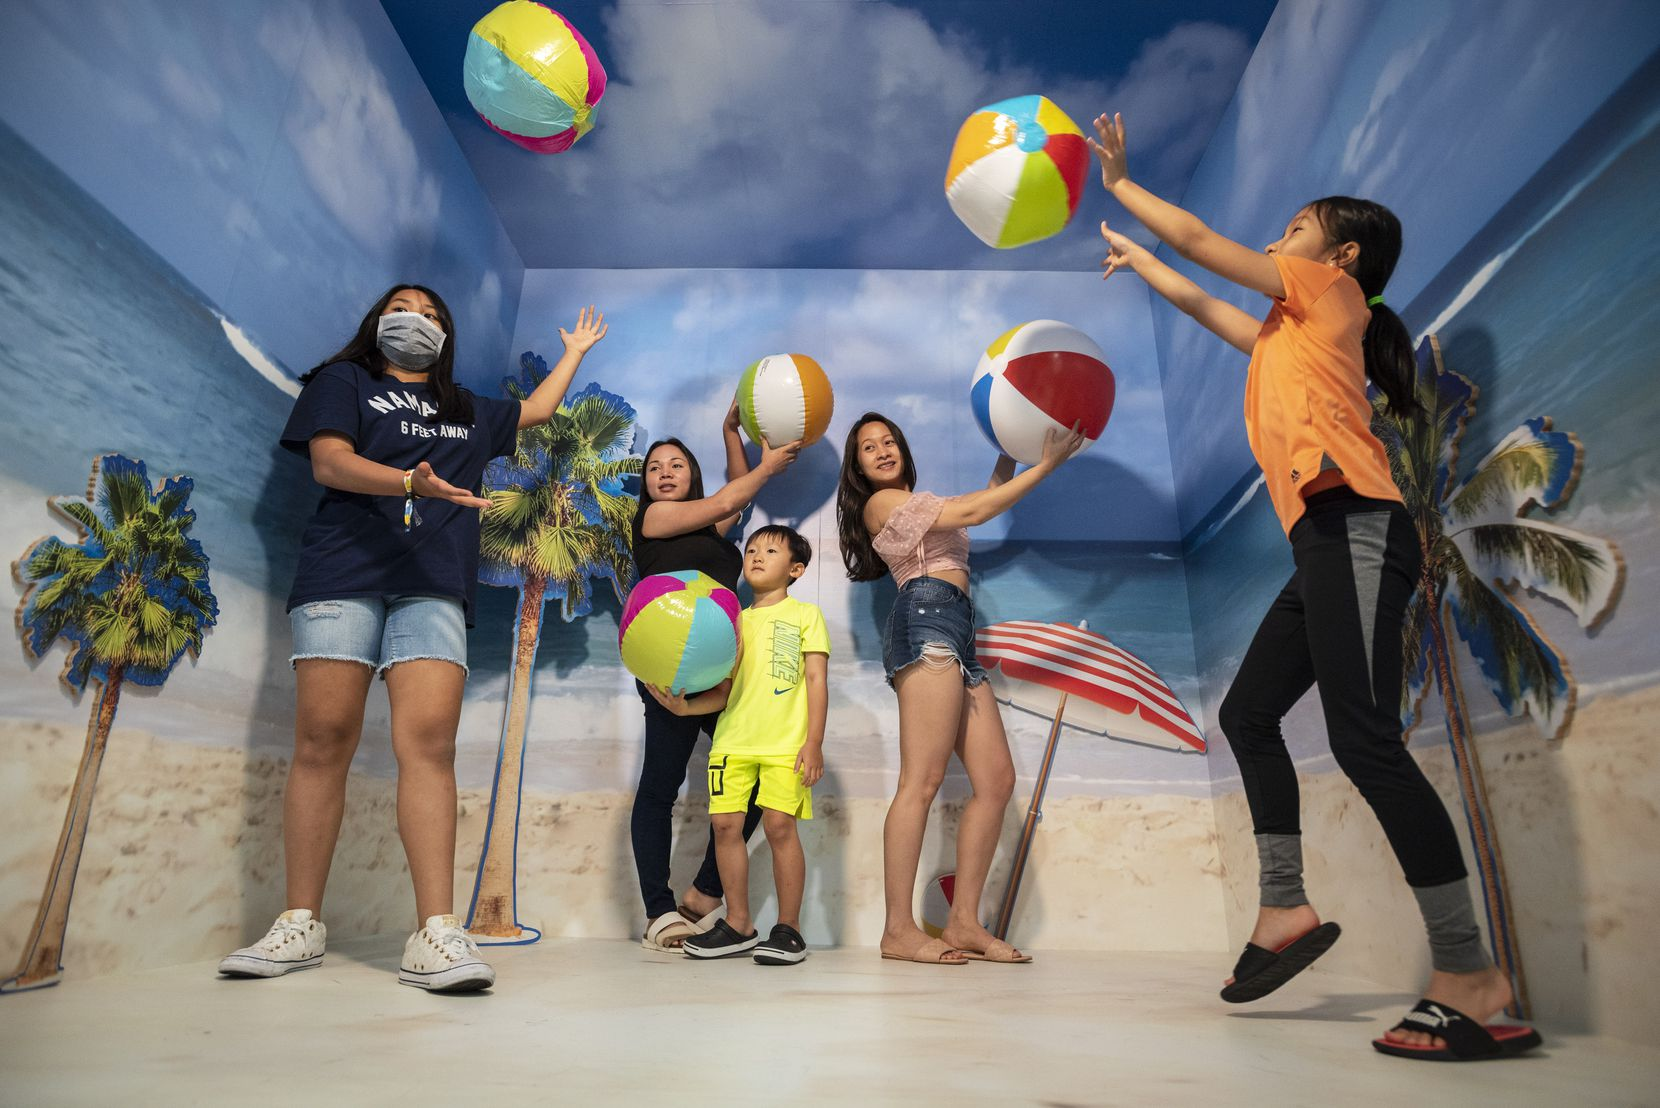 Hoan Le (center left) and Kelsy Duong (center right) take pictures with family members in one of the many vibrant settings at Pop! by Snowday, an immersive photo experience at Galleria Dallas. Beach balls are among a handful of provided props, and you can also take your own.